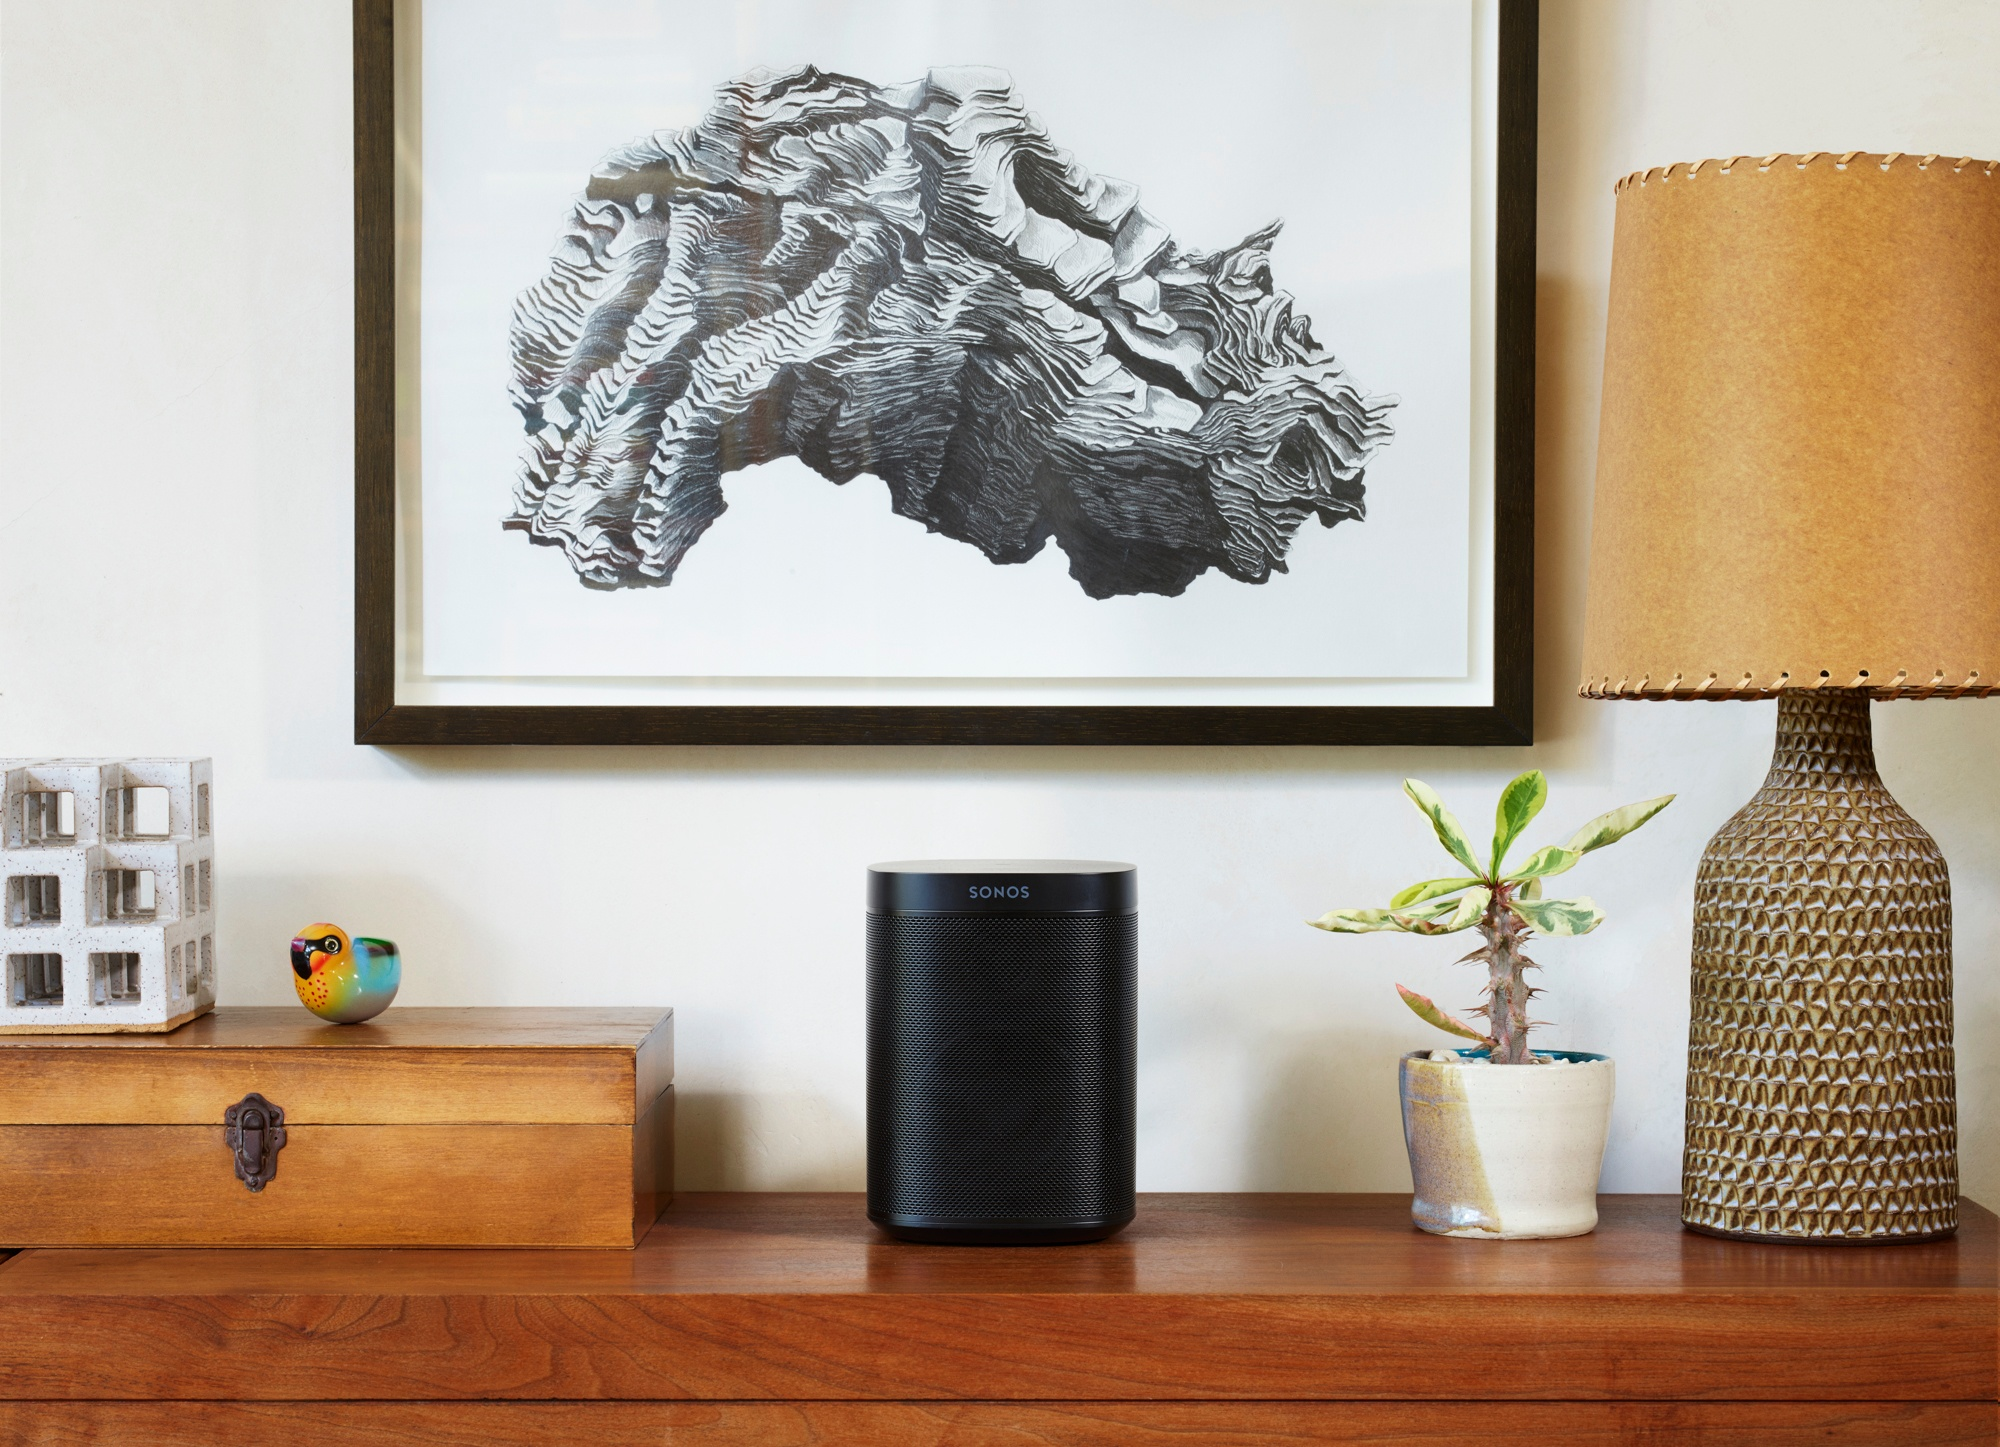 How To Control Sonos With Wondrwall